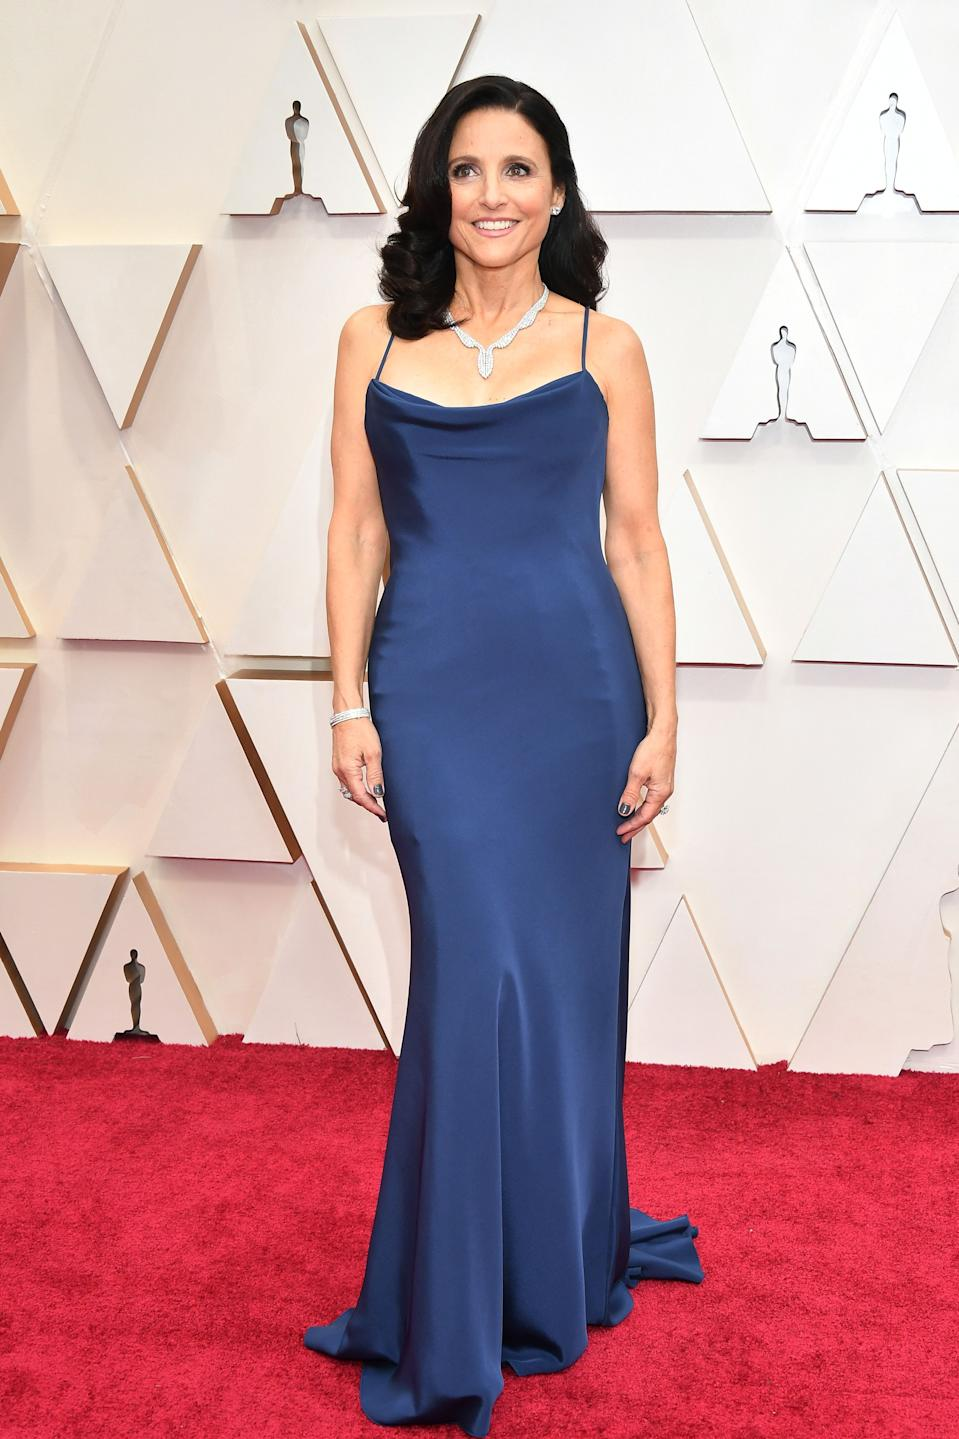 """The """"Downhill"""" star arrived on the red carpet in an elegant navy blue silk gown by Vera Wang."""